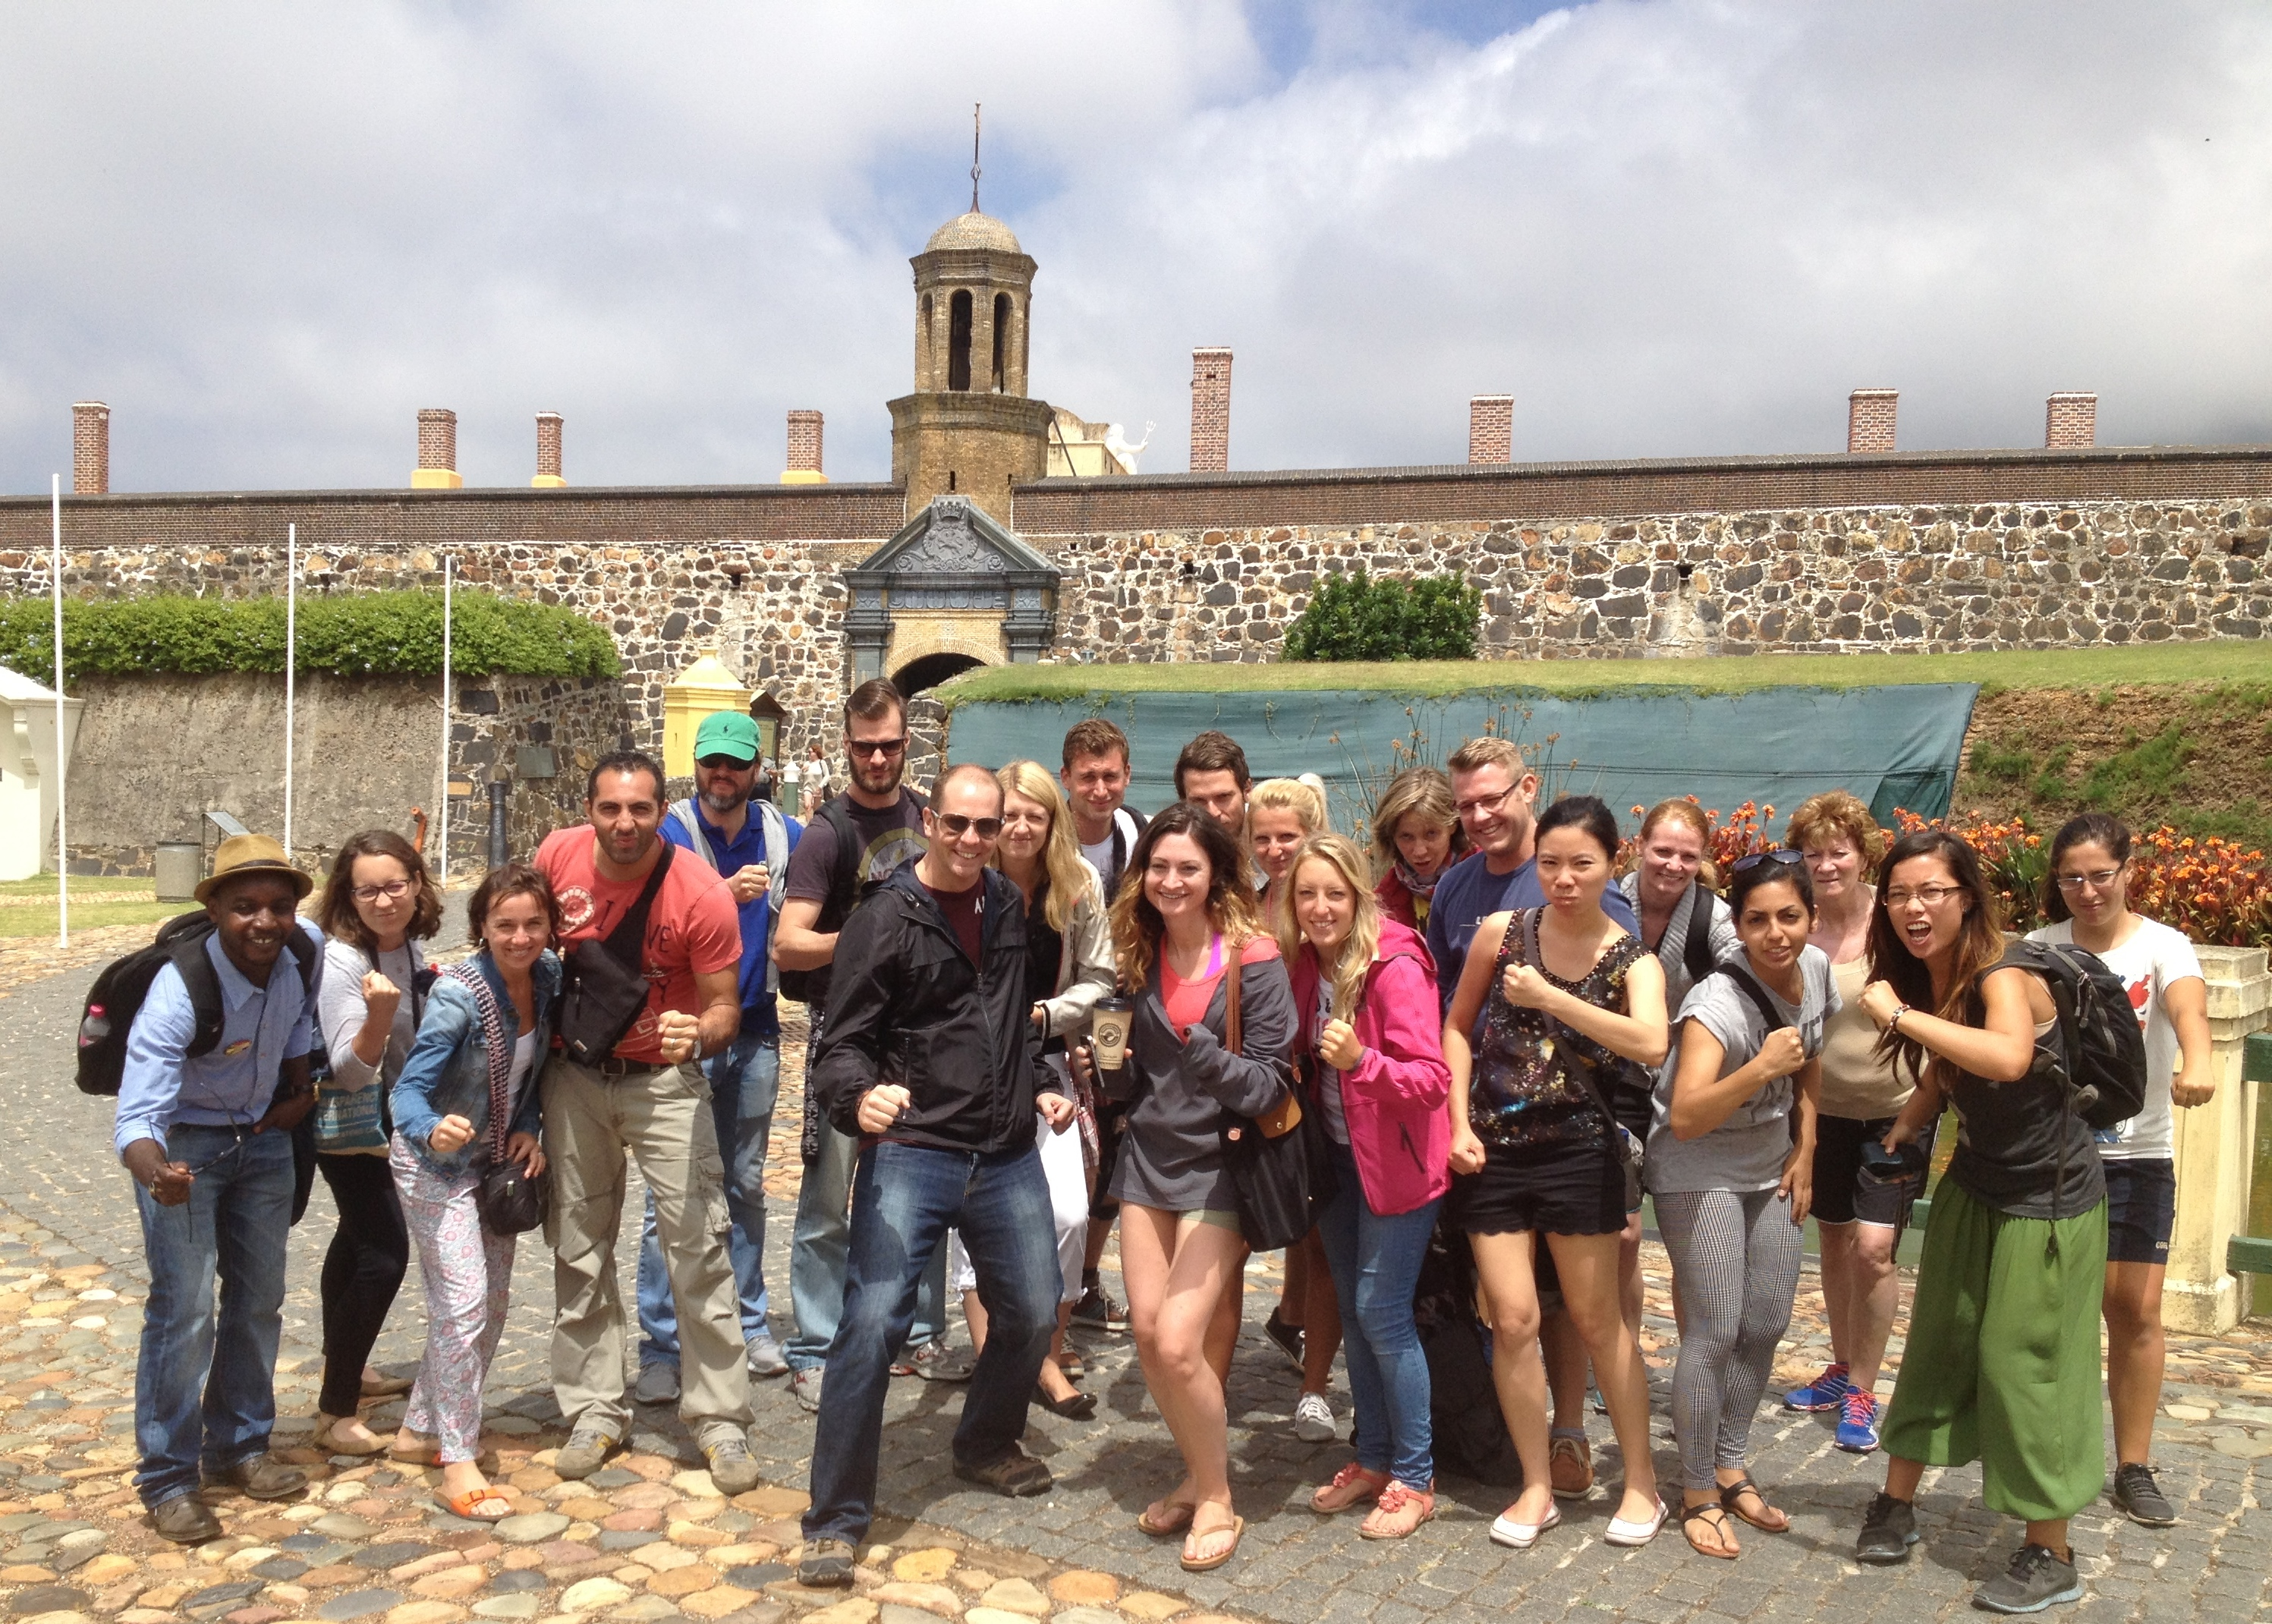 attraction review reviews ilios travel cape town central western